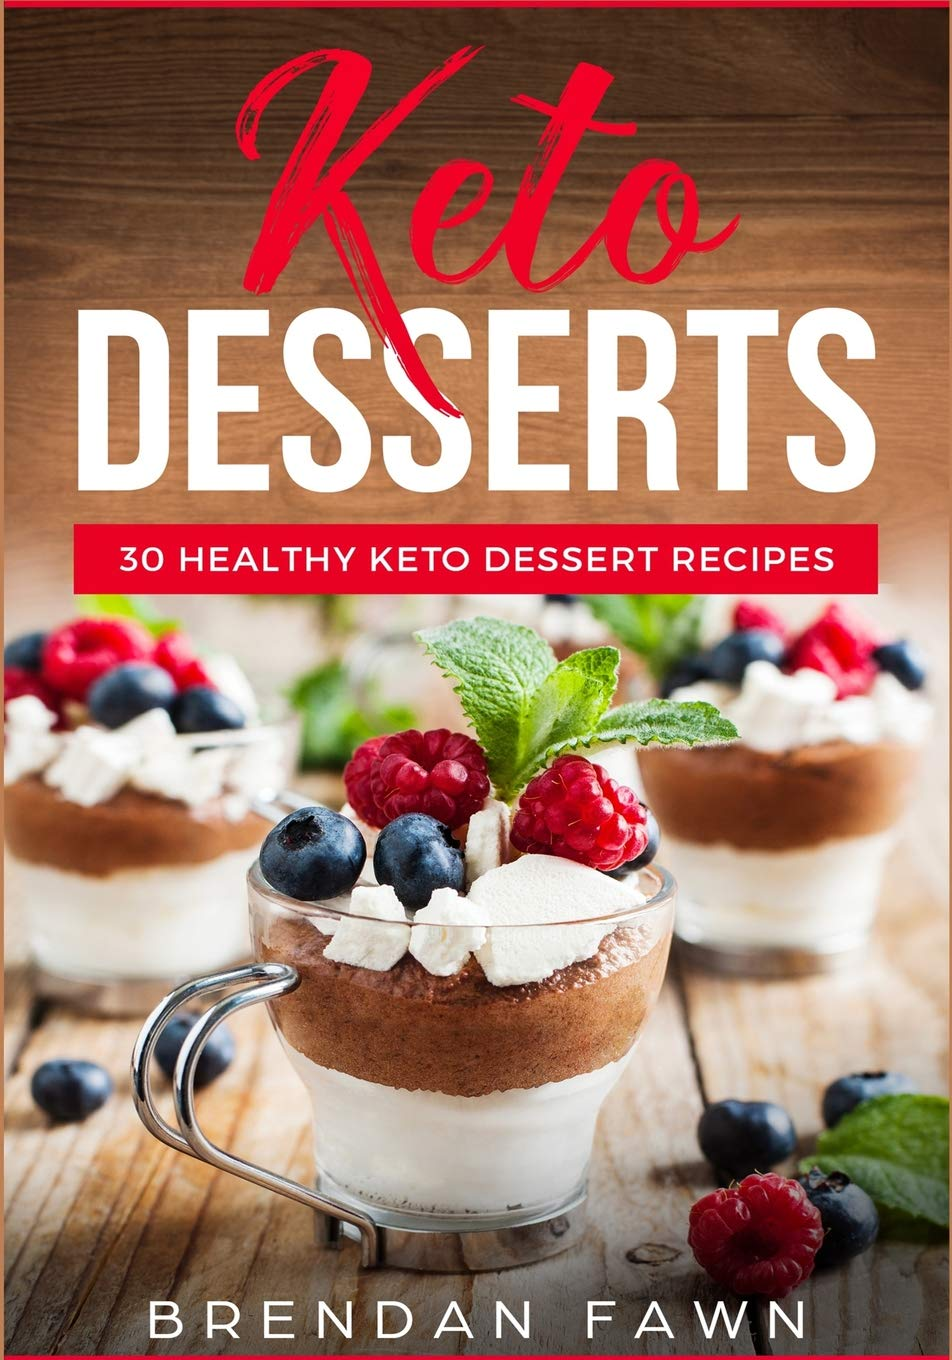 20% Off Online Coupon Keto Sweets